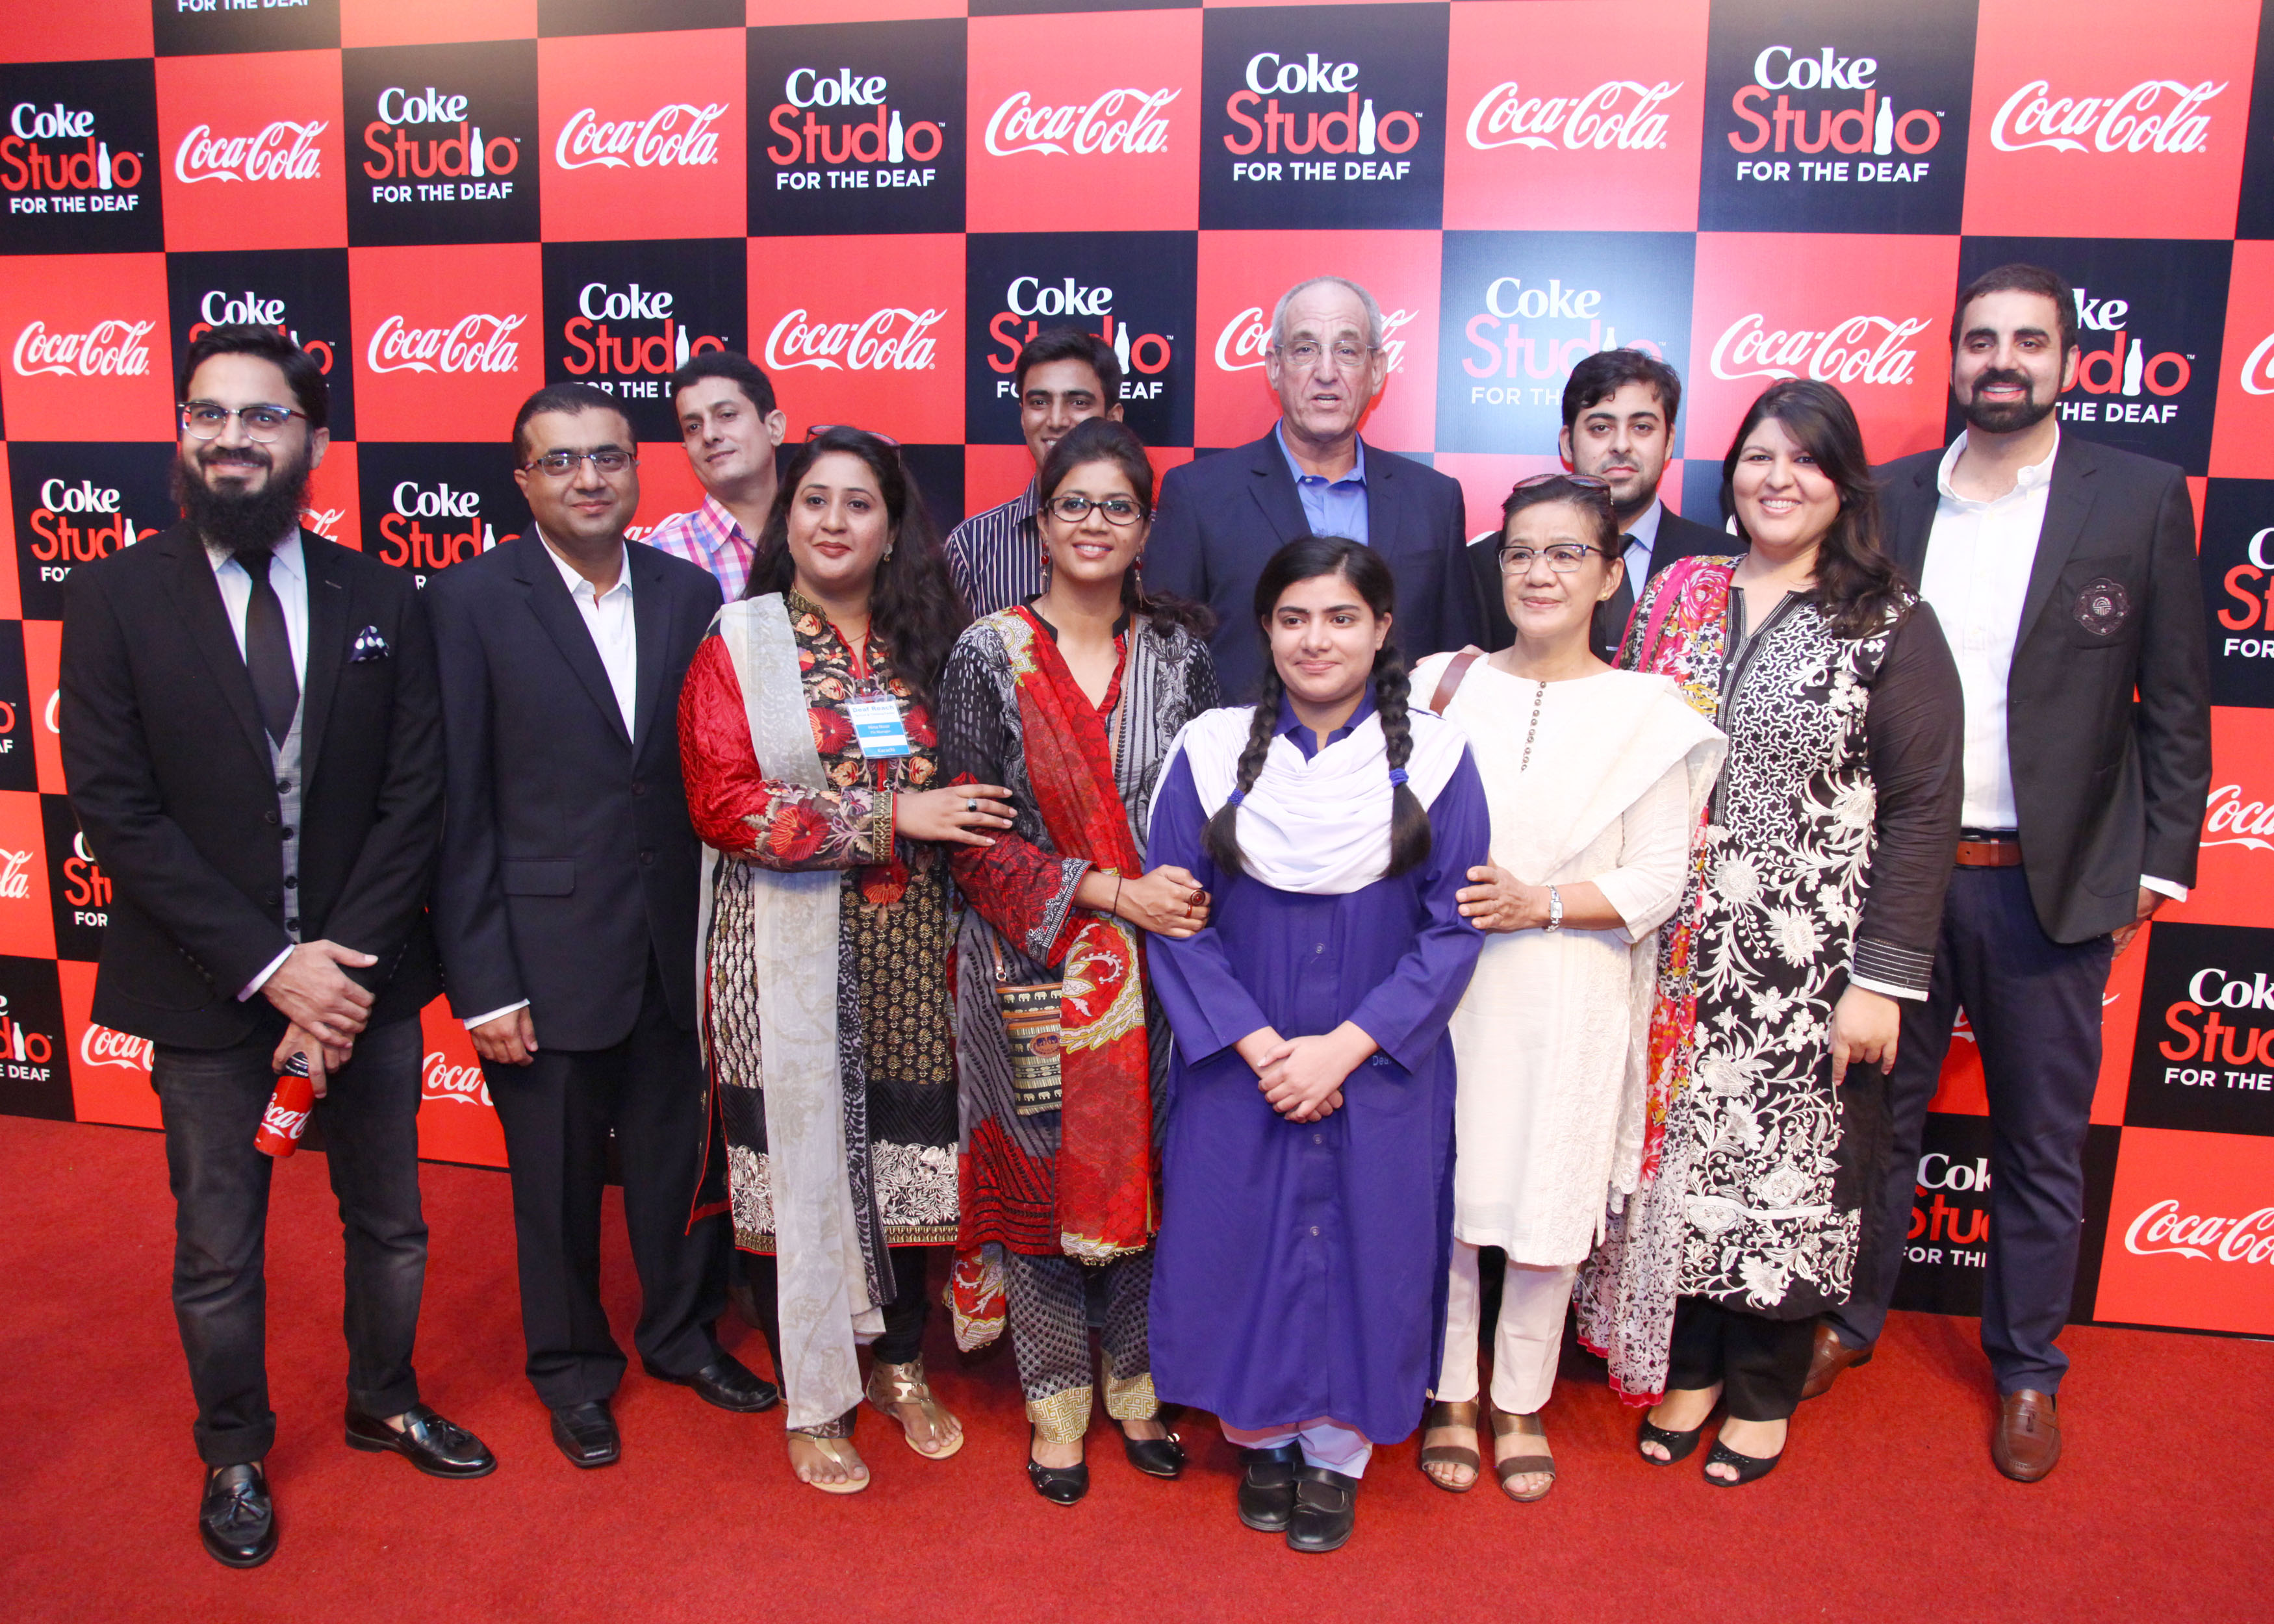 Team Coca-Cola Pakistan with students and management of Deaf Reach School at the launch event of Coke Studio for the Deaf community#CokeStudio9